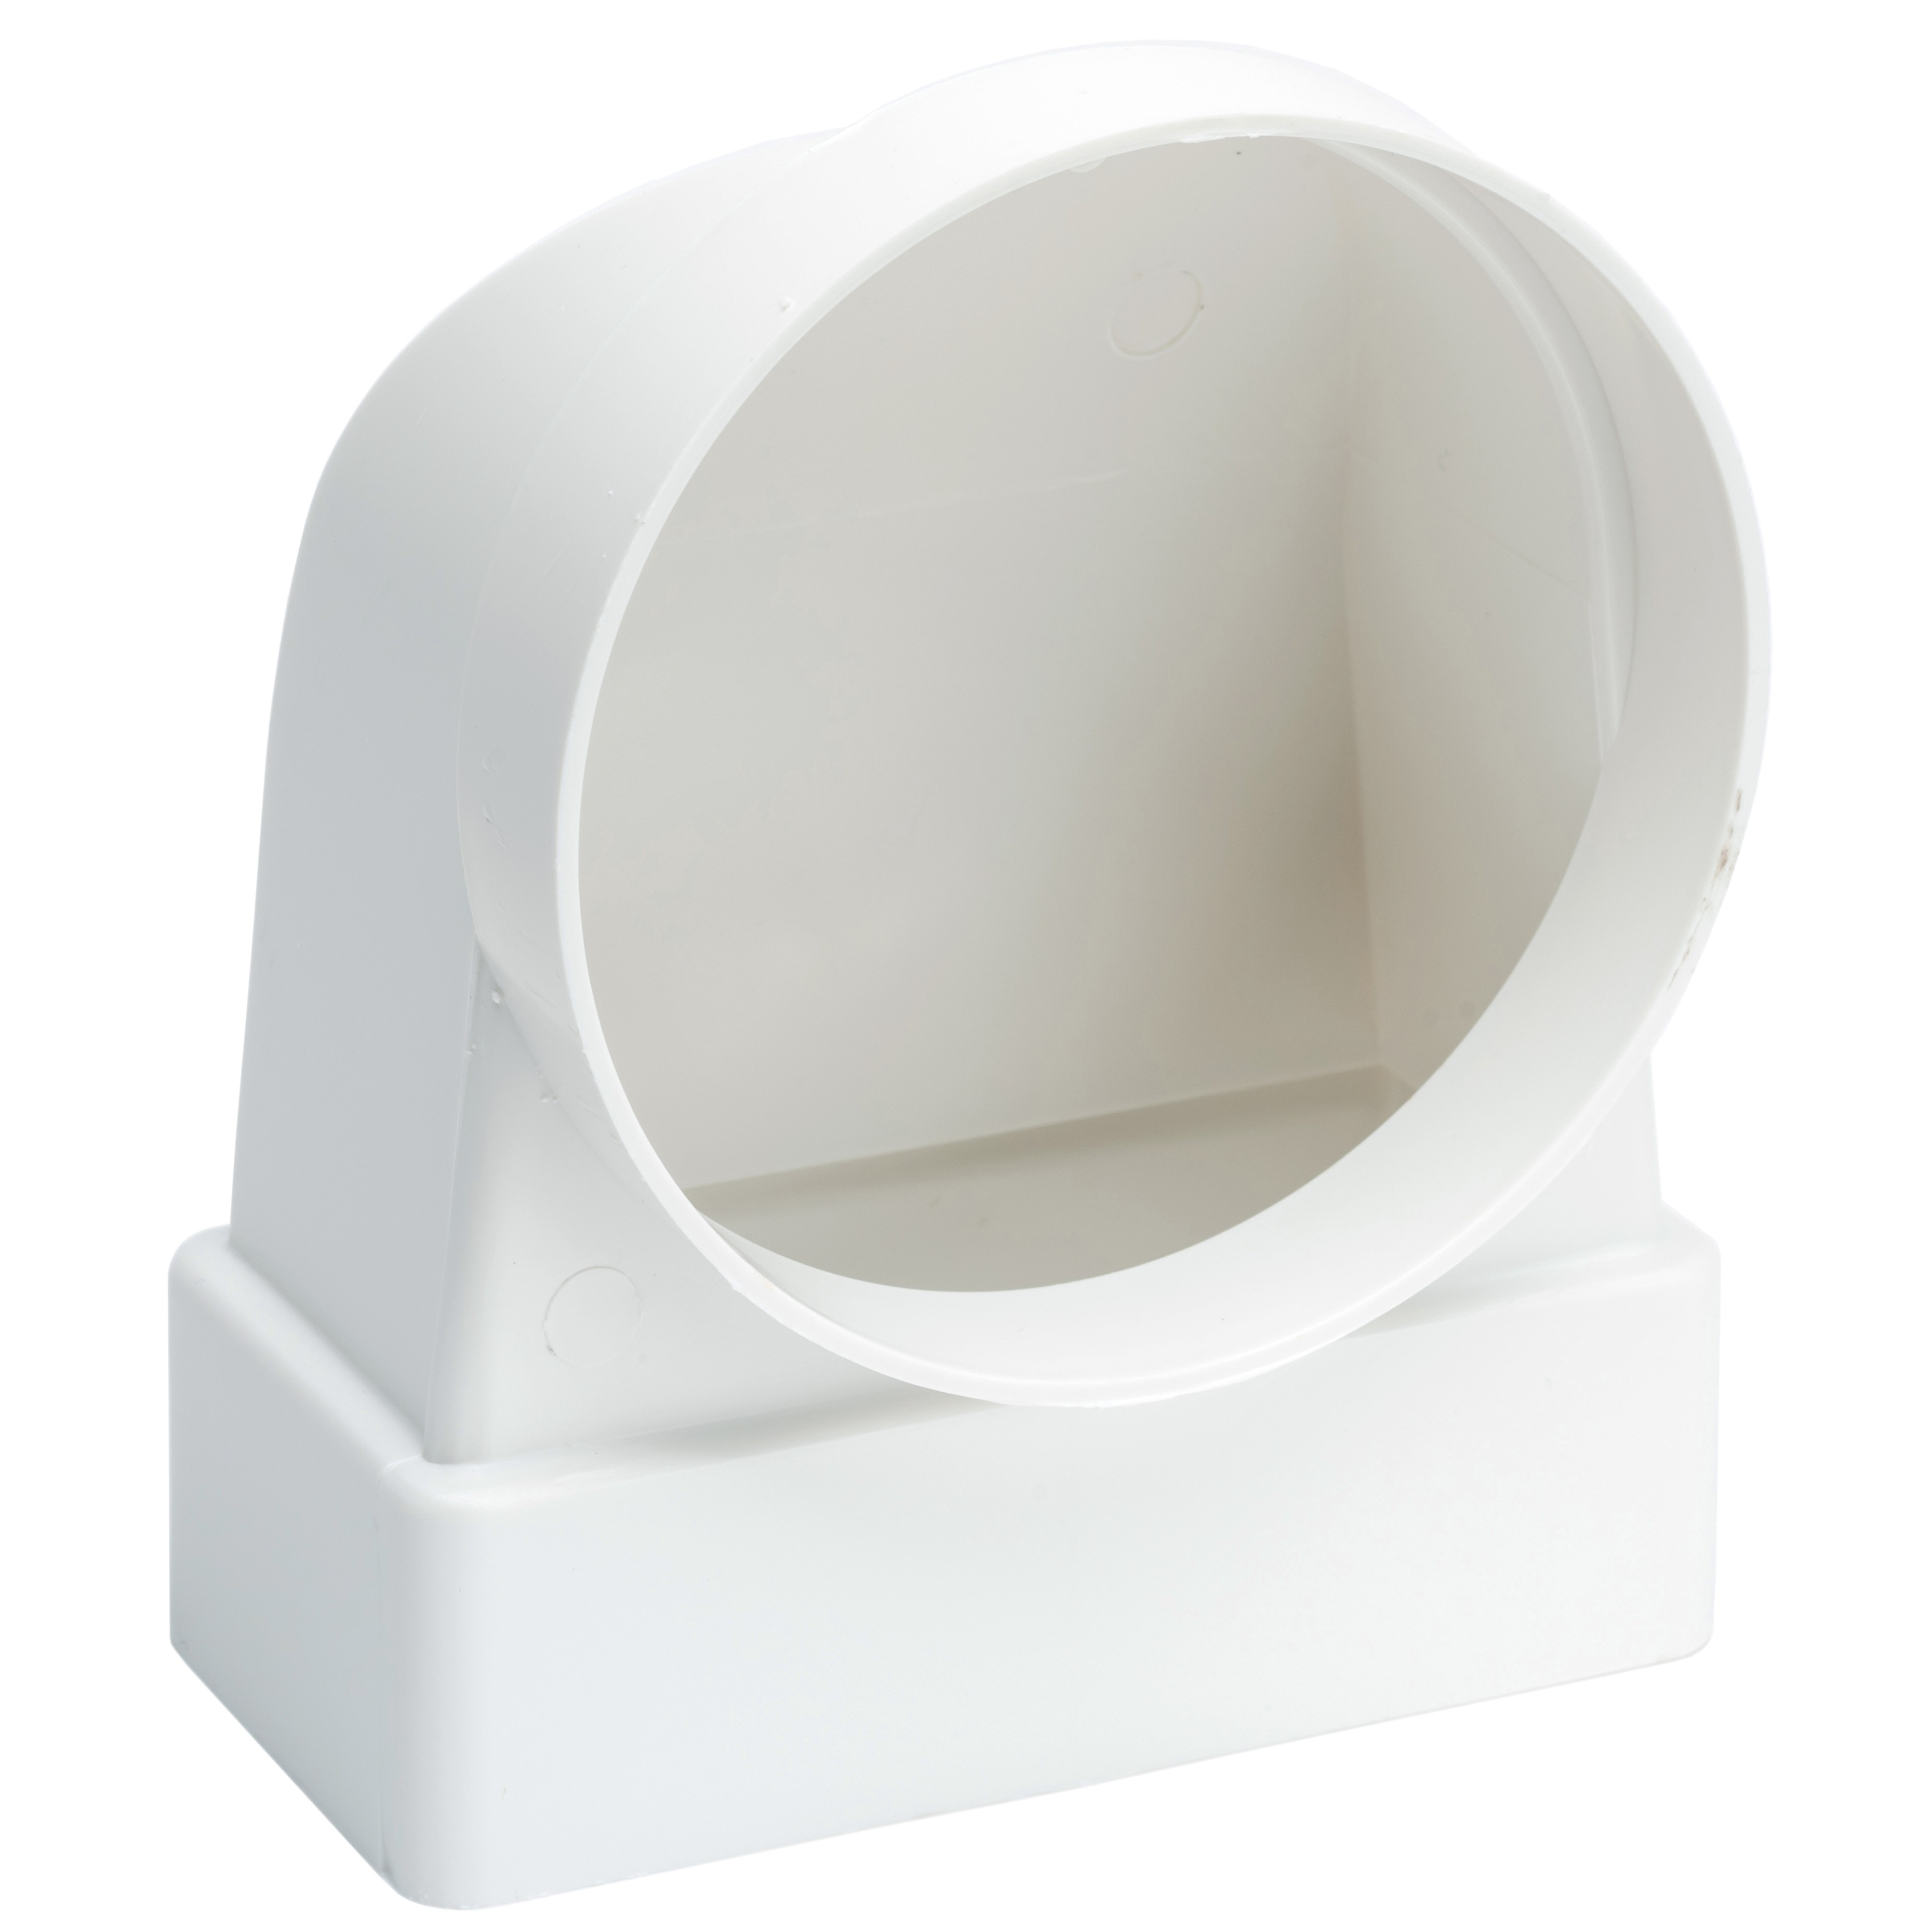 Manrose Flat To 100mm Round Ducting Pipe Male Elbow - White, 110mm x 54mm